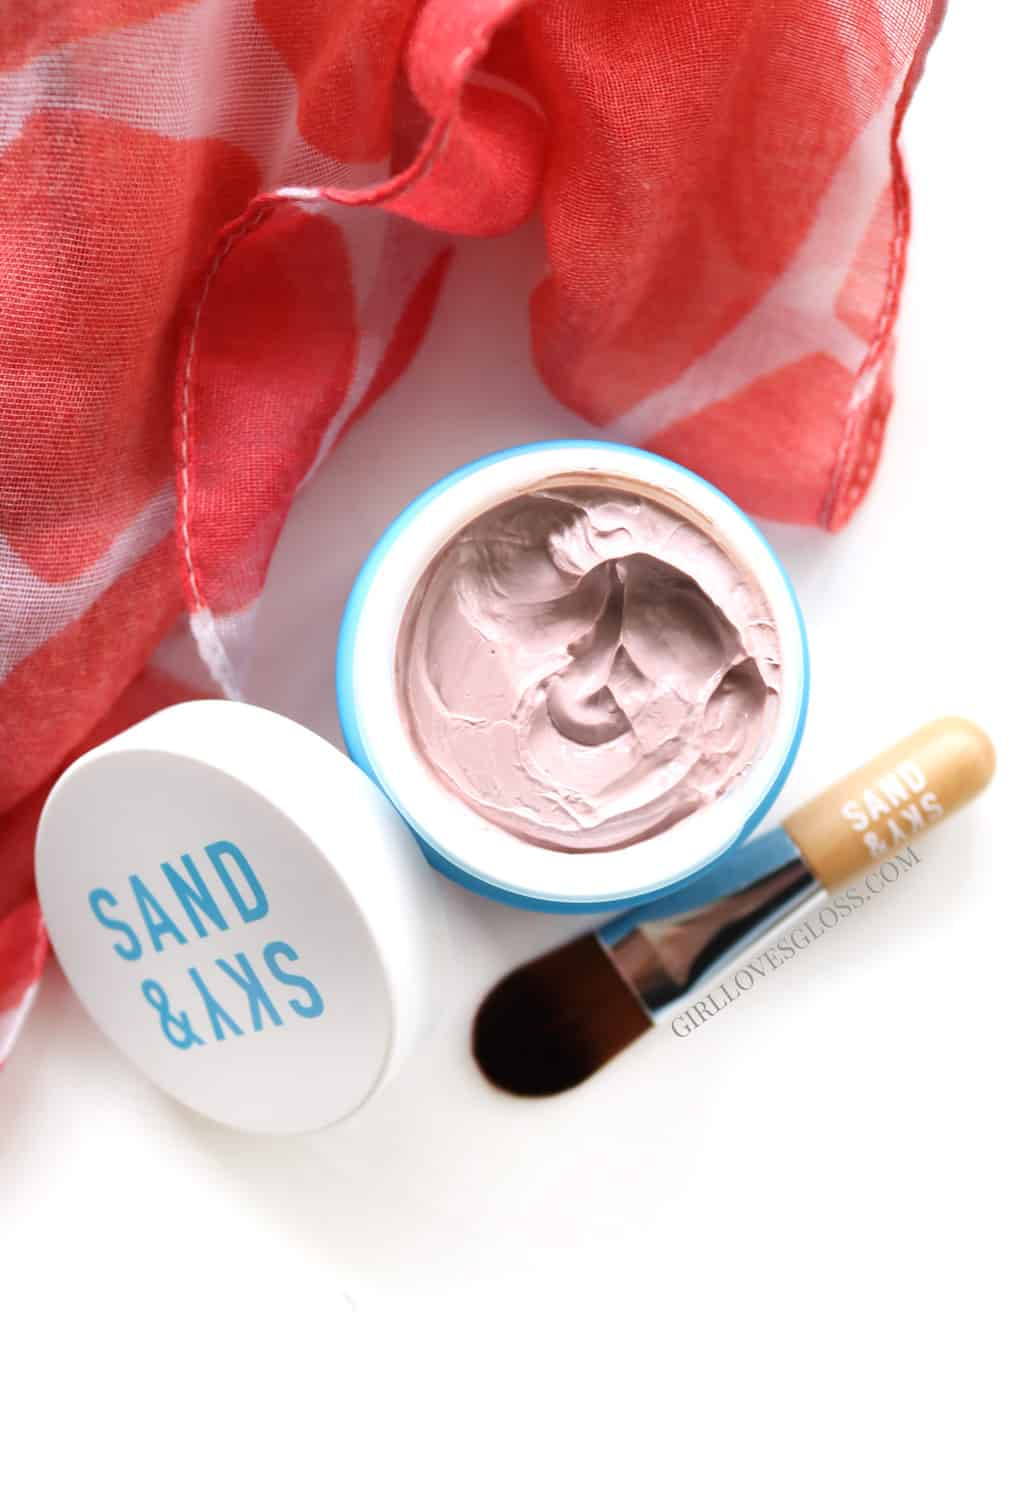 Sand and Sky Australian Pink Clay Mask Review